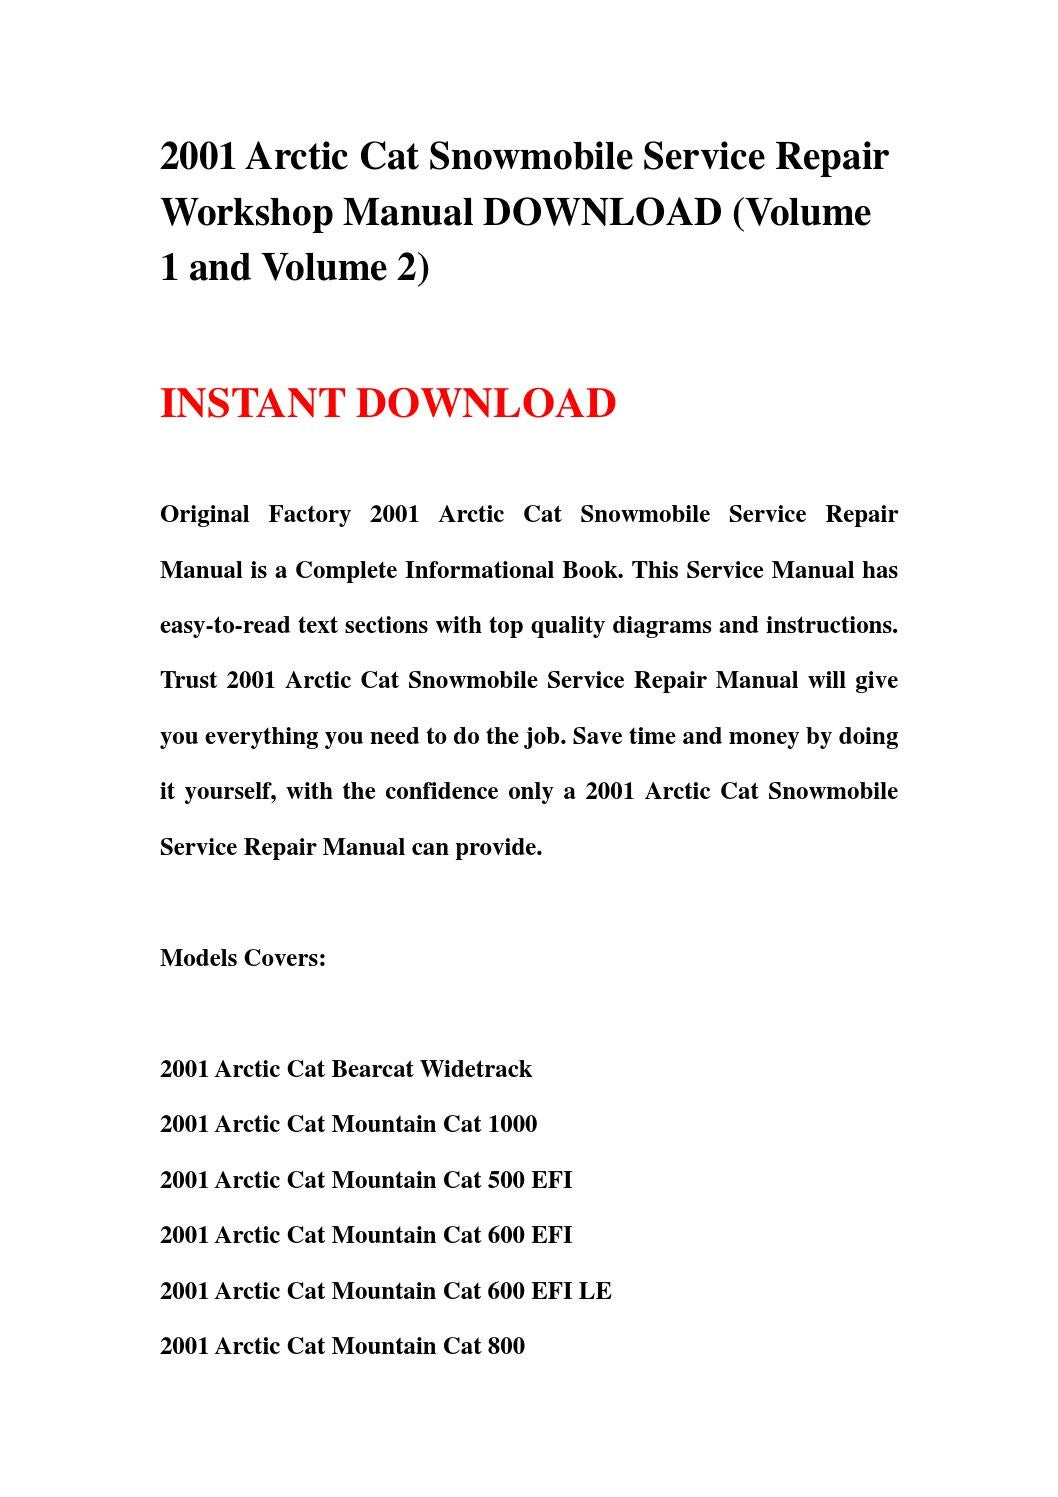 2001 arctic cat snowmobile service repair workshop manual download (volume  1 and volume 2) by jsehfnj67yd - issuu